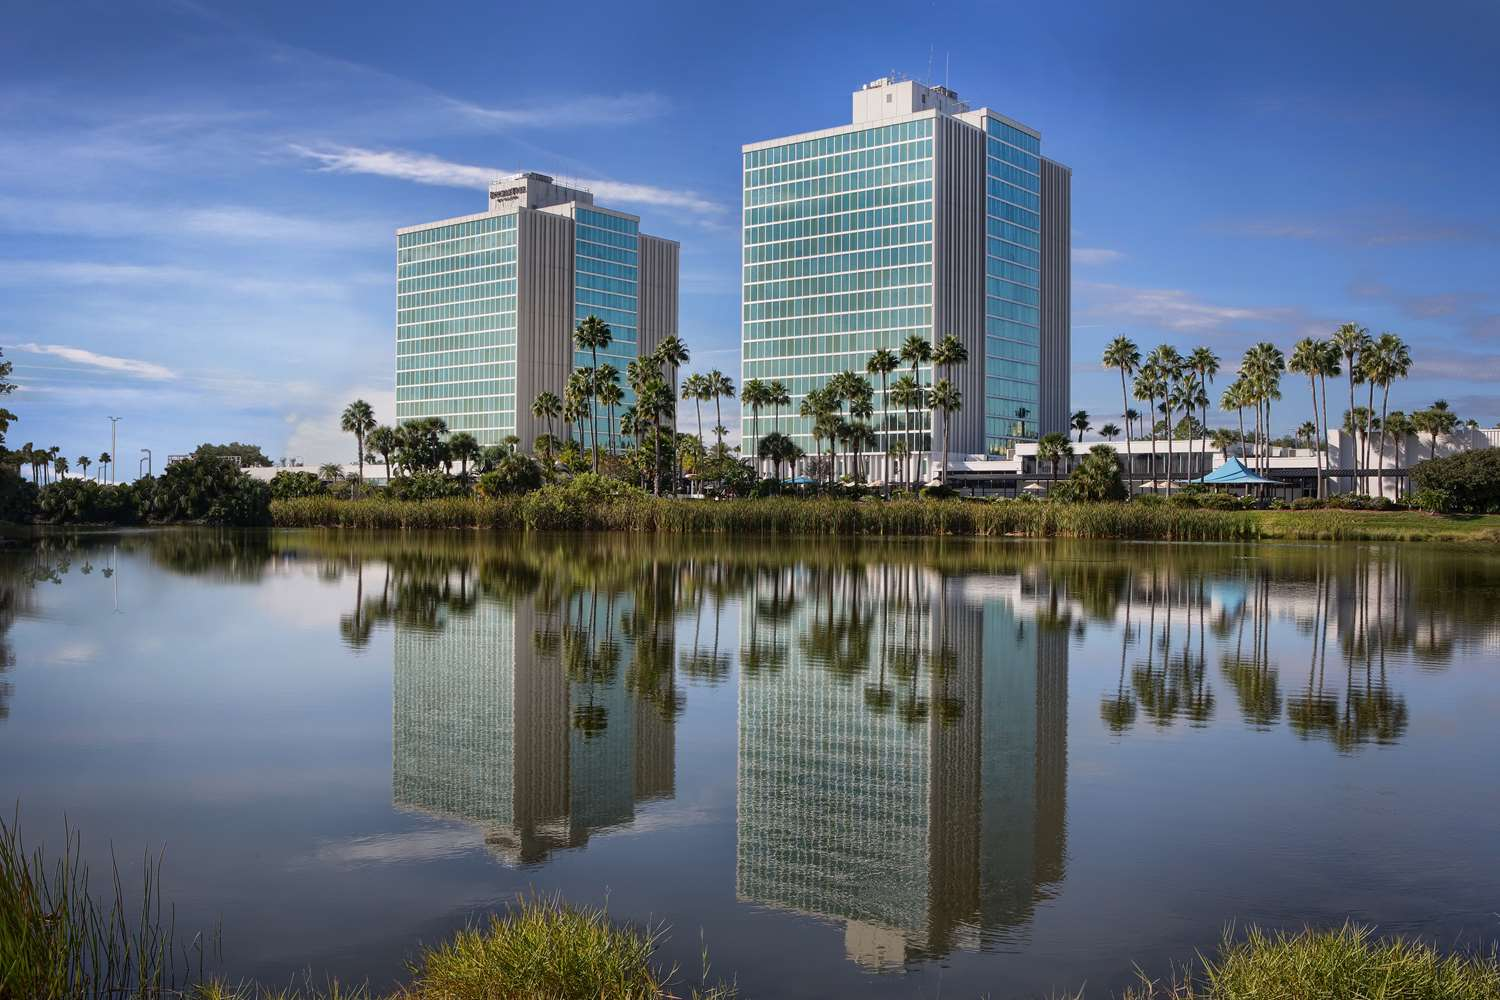 DoubleTree by Hilton Hotel Universal Studios Orlando